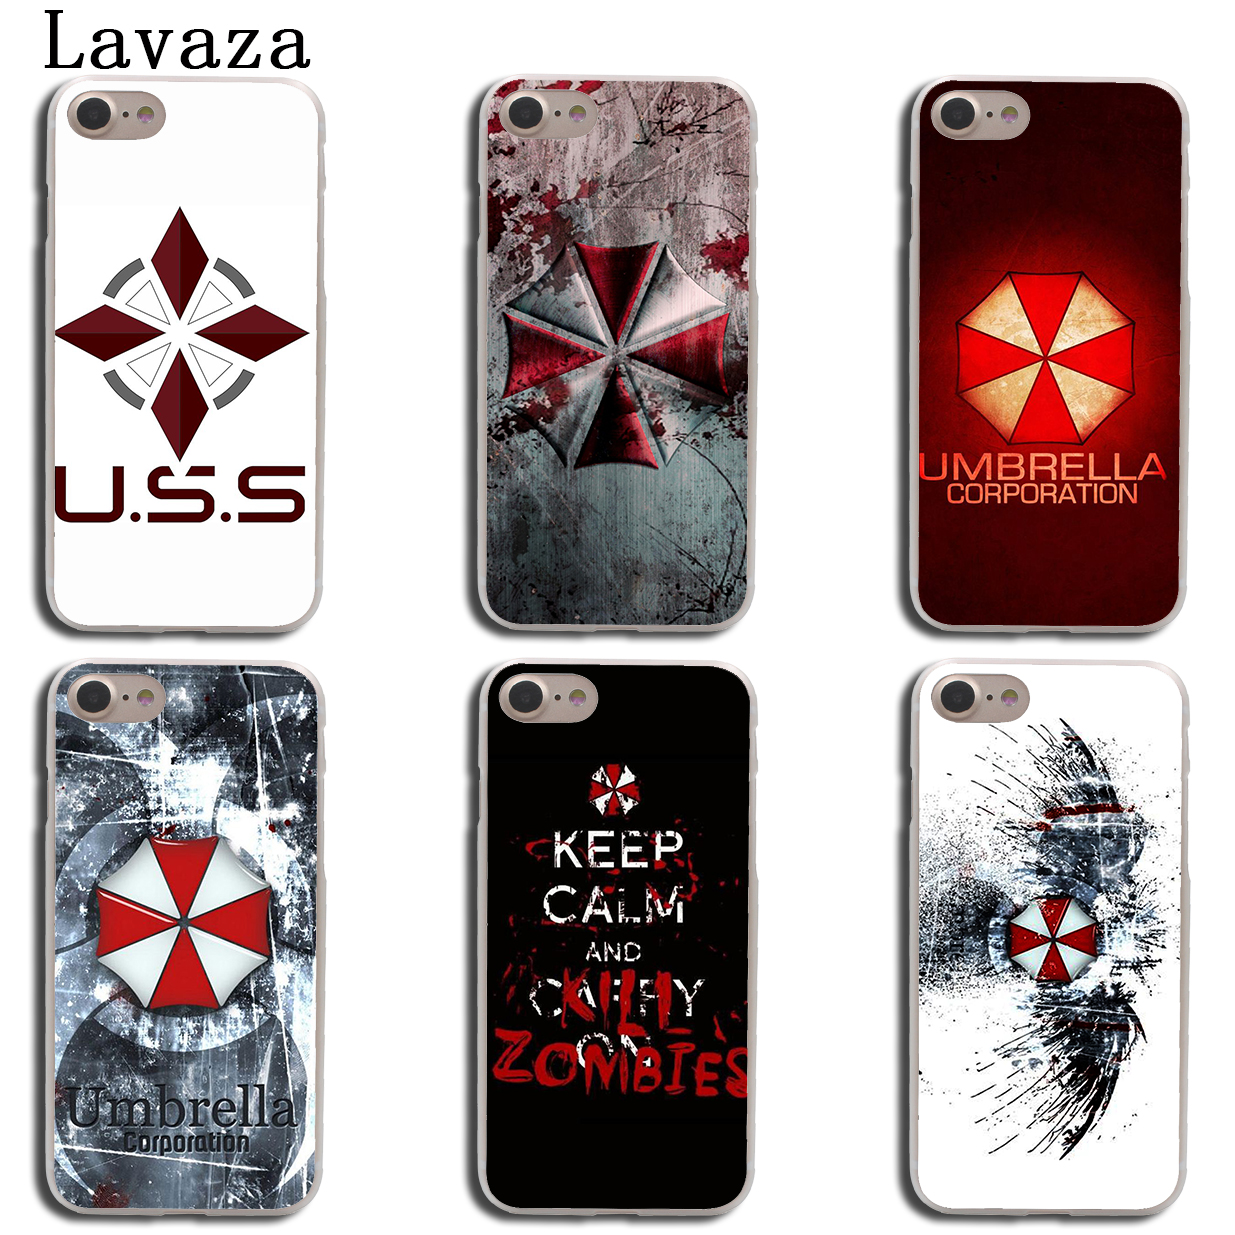 Binful Iphone Case Cover Transparent Coque For Iphone X Xr Xs Max 8 7 6s 6 Plus 5 5s 5c Se 4s 4 Resident Evil Umbrella Logo Cellphones & Telecommunications